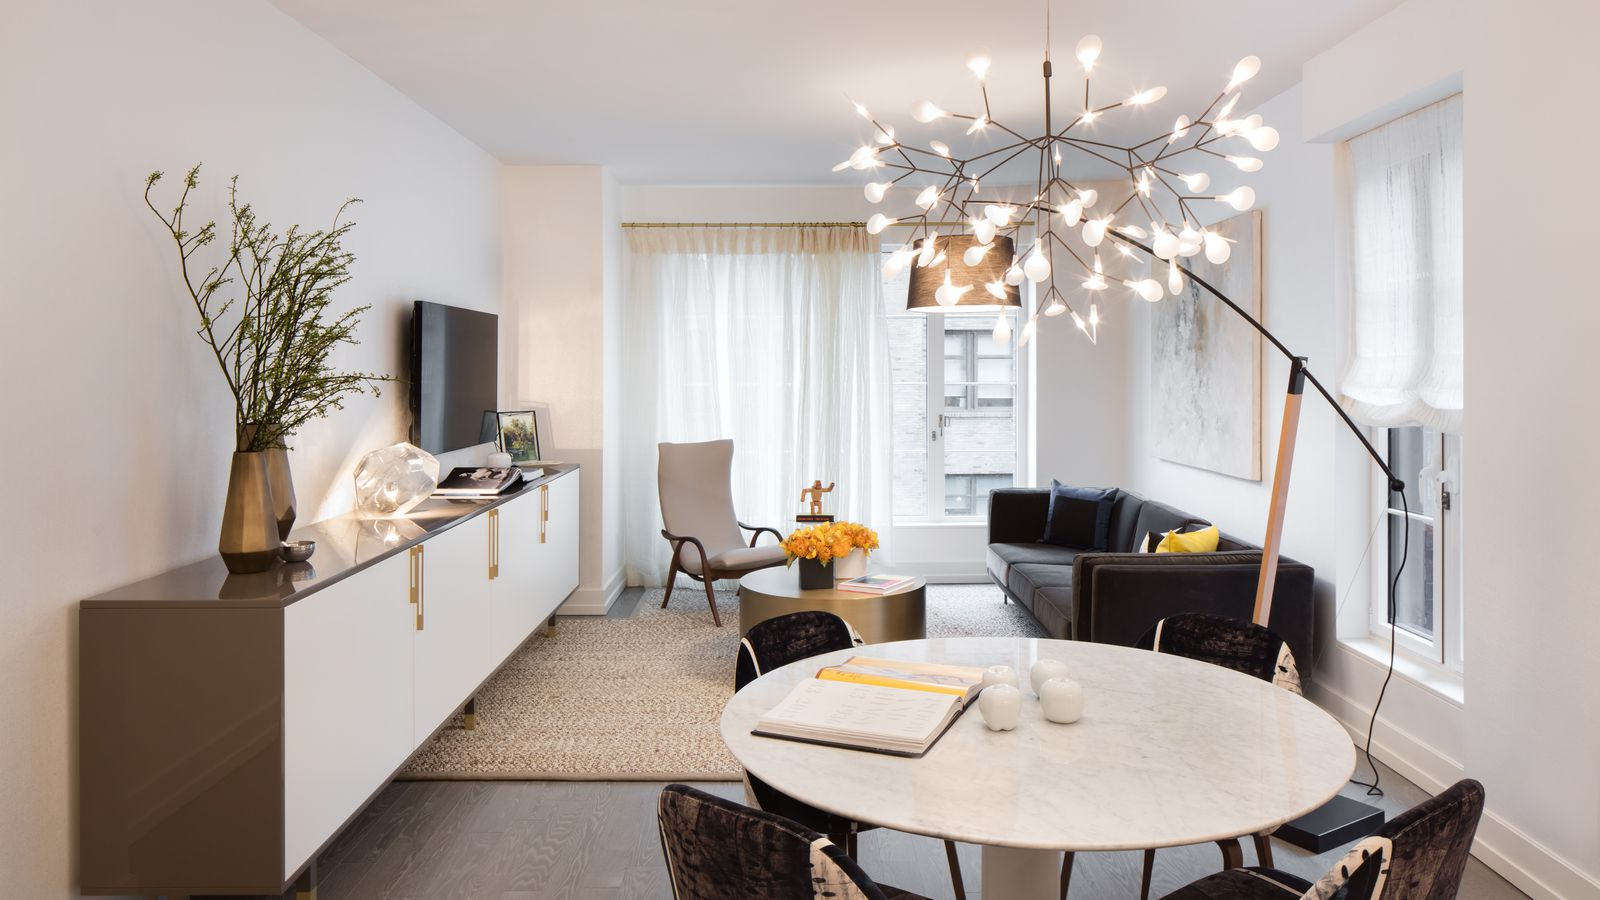 Extell s cushy hudson square condo shows off its model for Model apartments